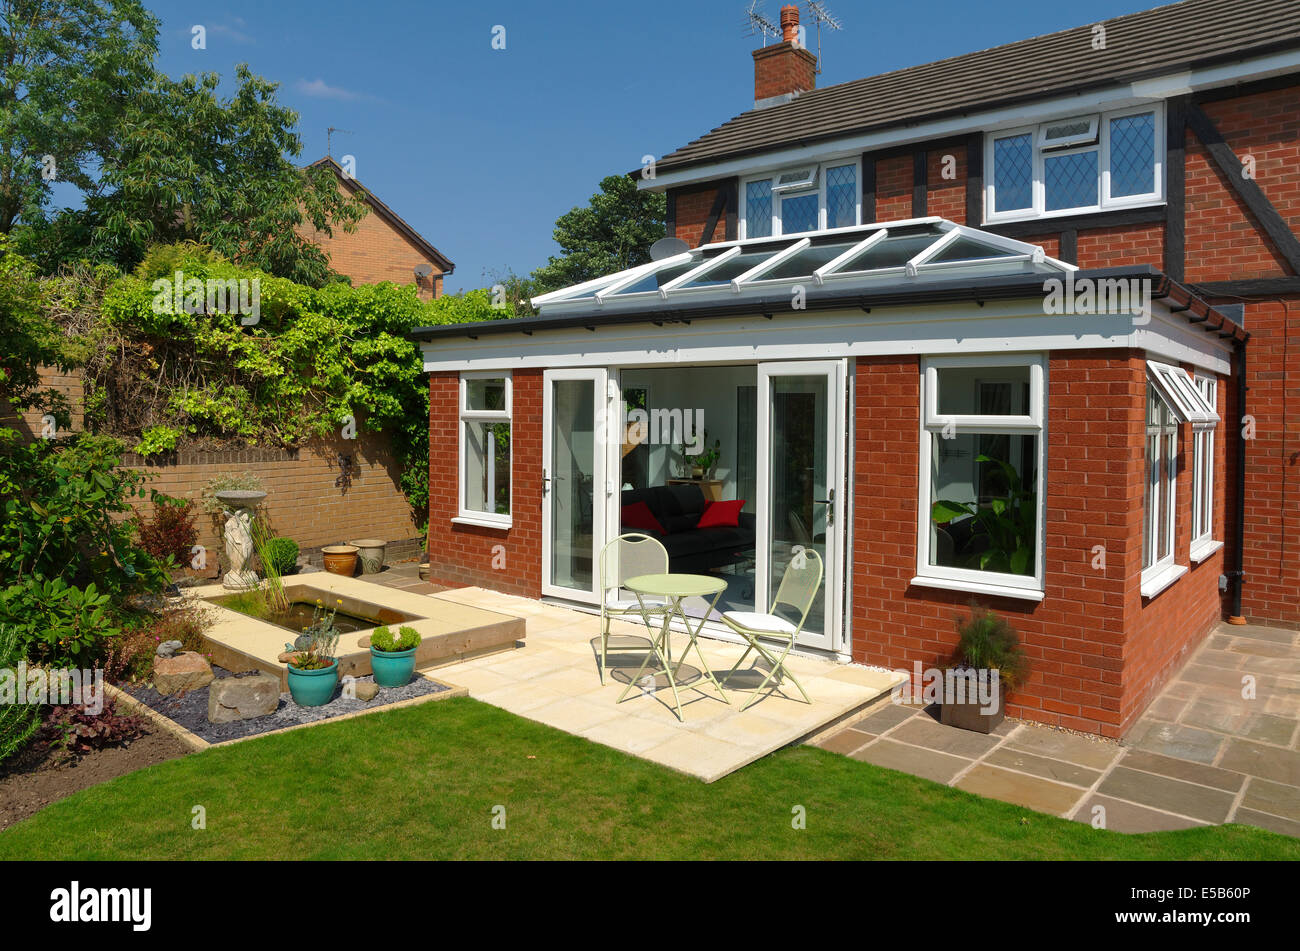 Orangery style conservatory exterior view home improvement with doors open - Stock Image